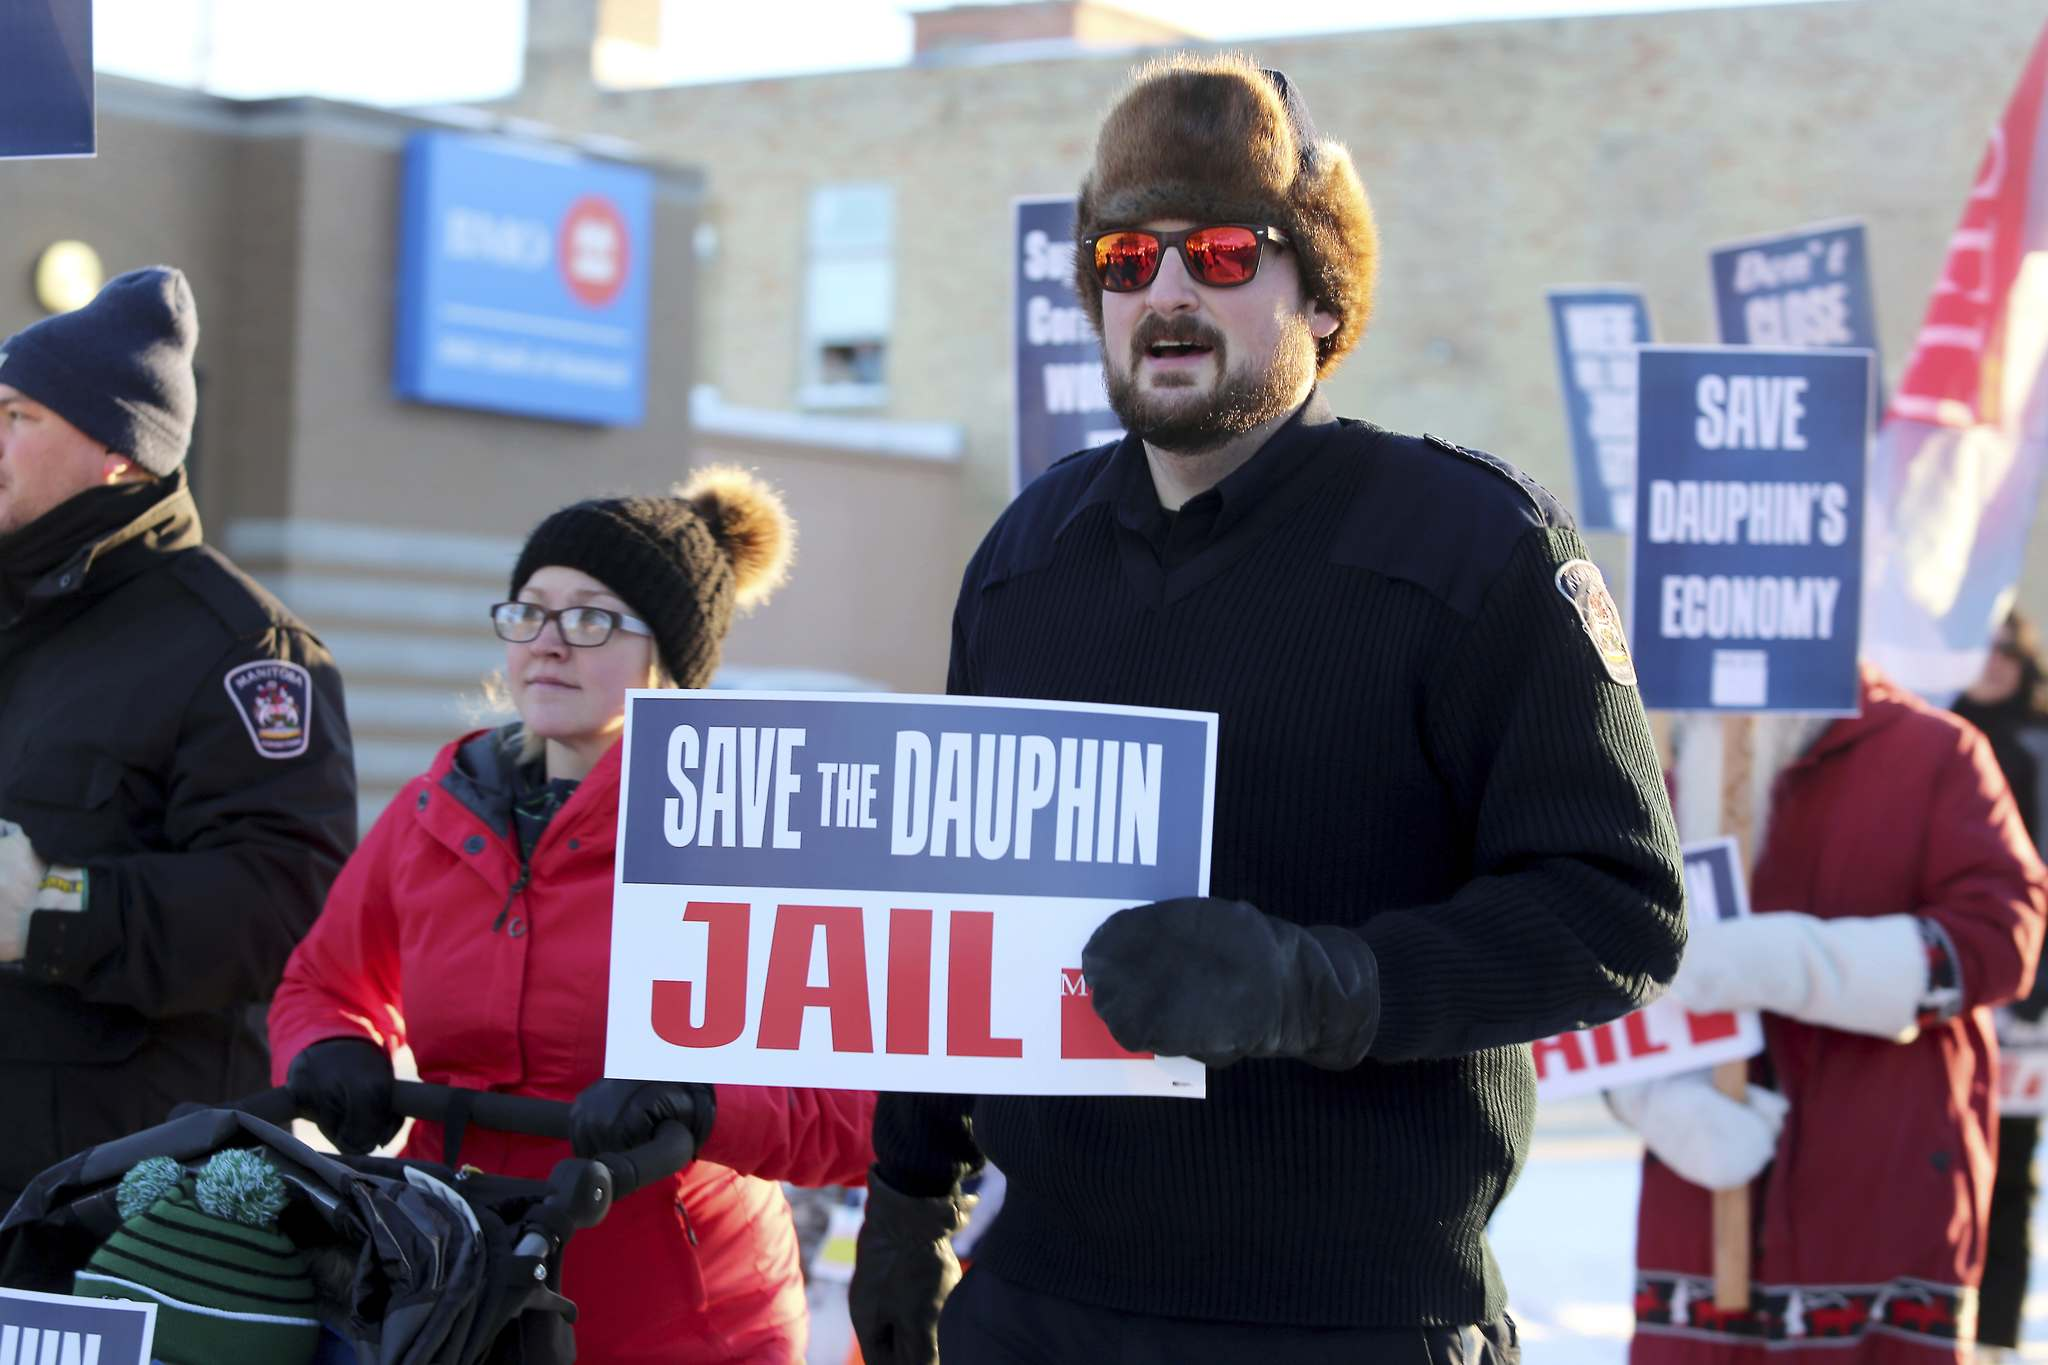 Employees and supporters have held several rallies to voice their opposition to the jail's closure. (Drew May / The Brandon Sun files)</p>